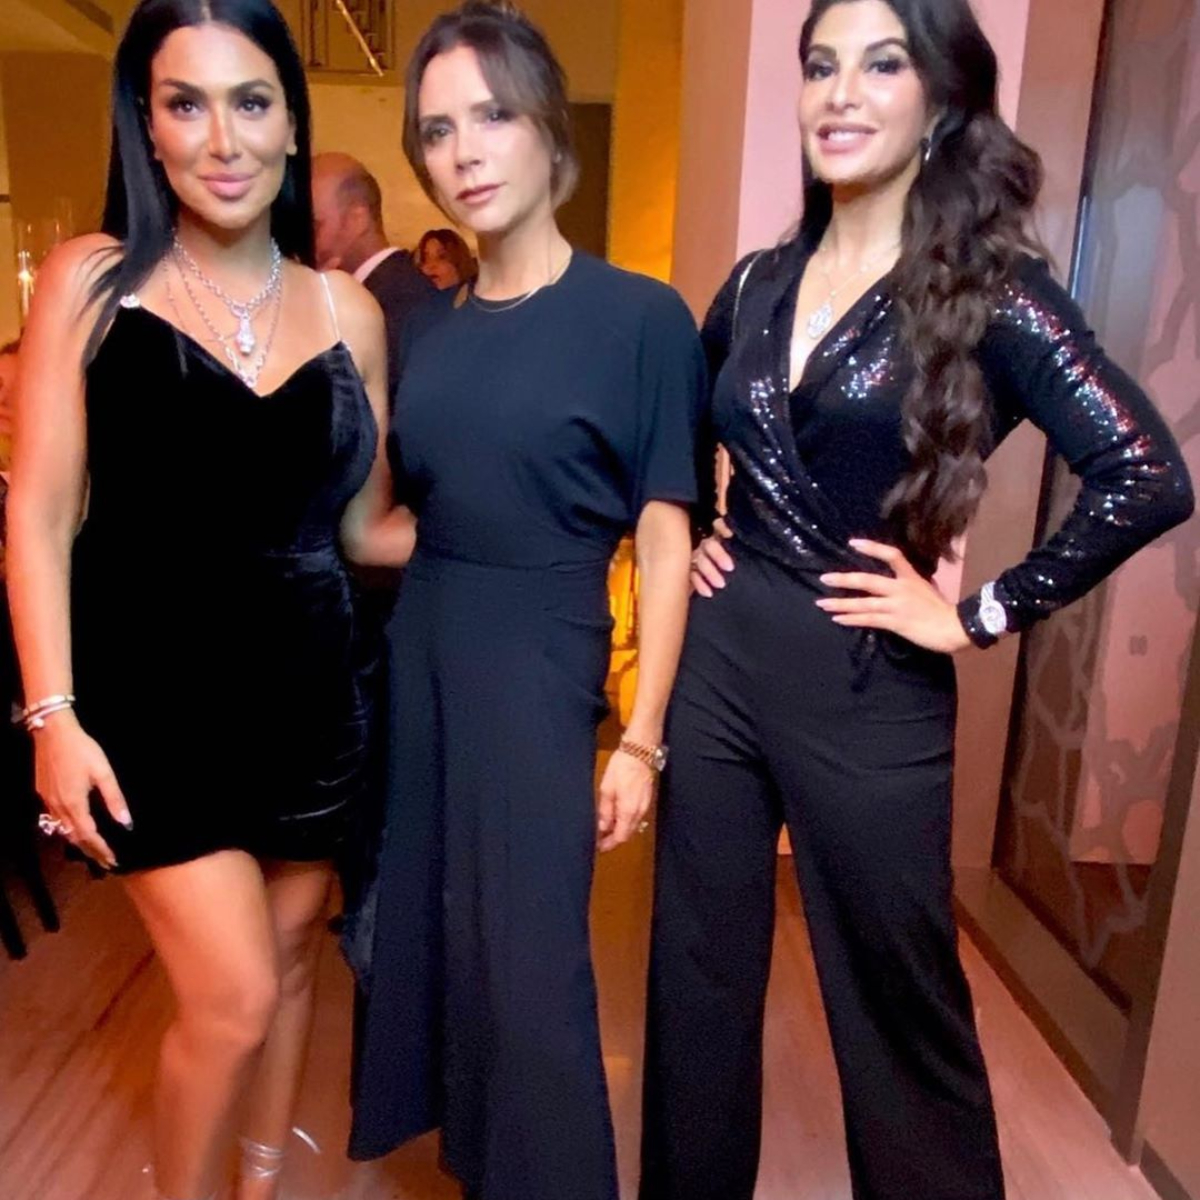 Victoria Beckham meets Jacqueline Fernandez & showers her with kisses; Race 3 star says its 'Dream come true'